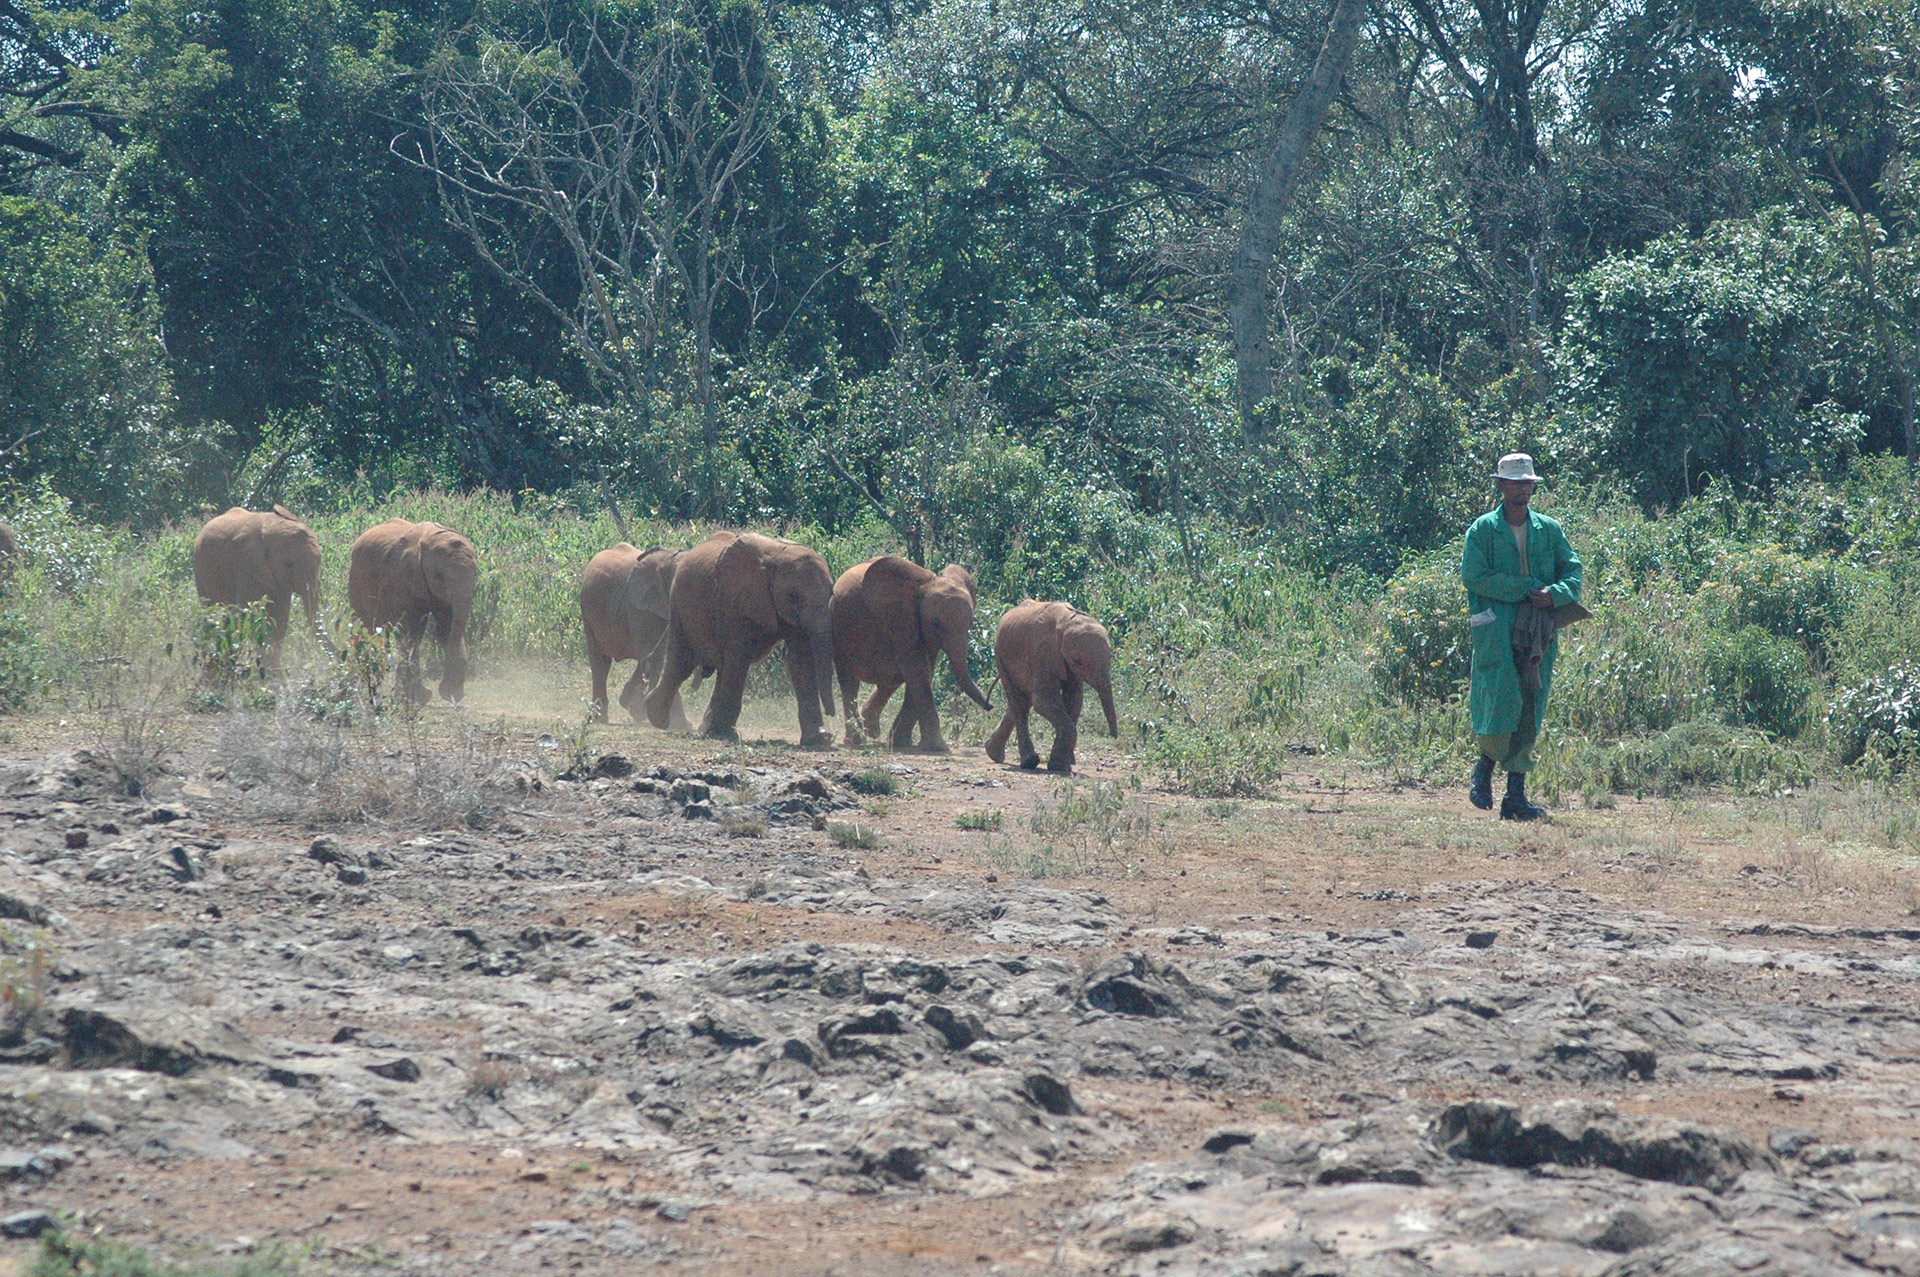 David Sheldrick Wildlife Trust - Elephant Sanctuary